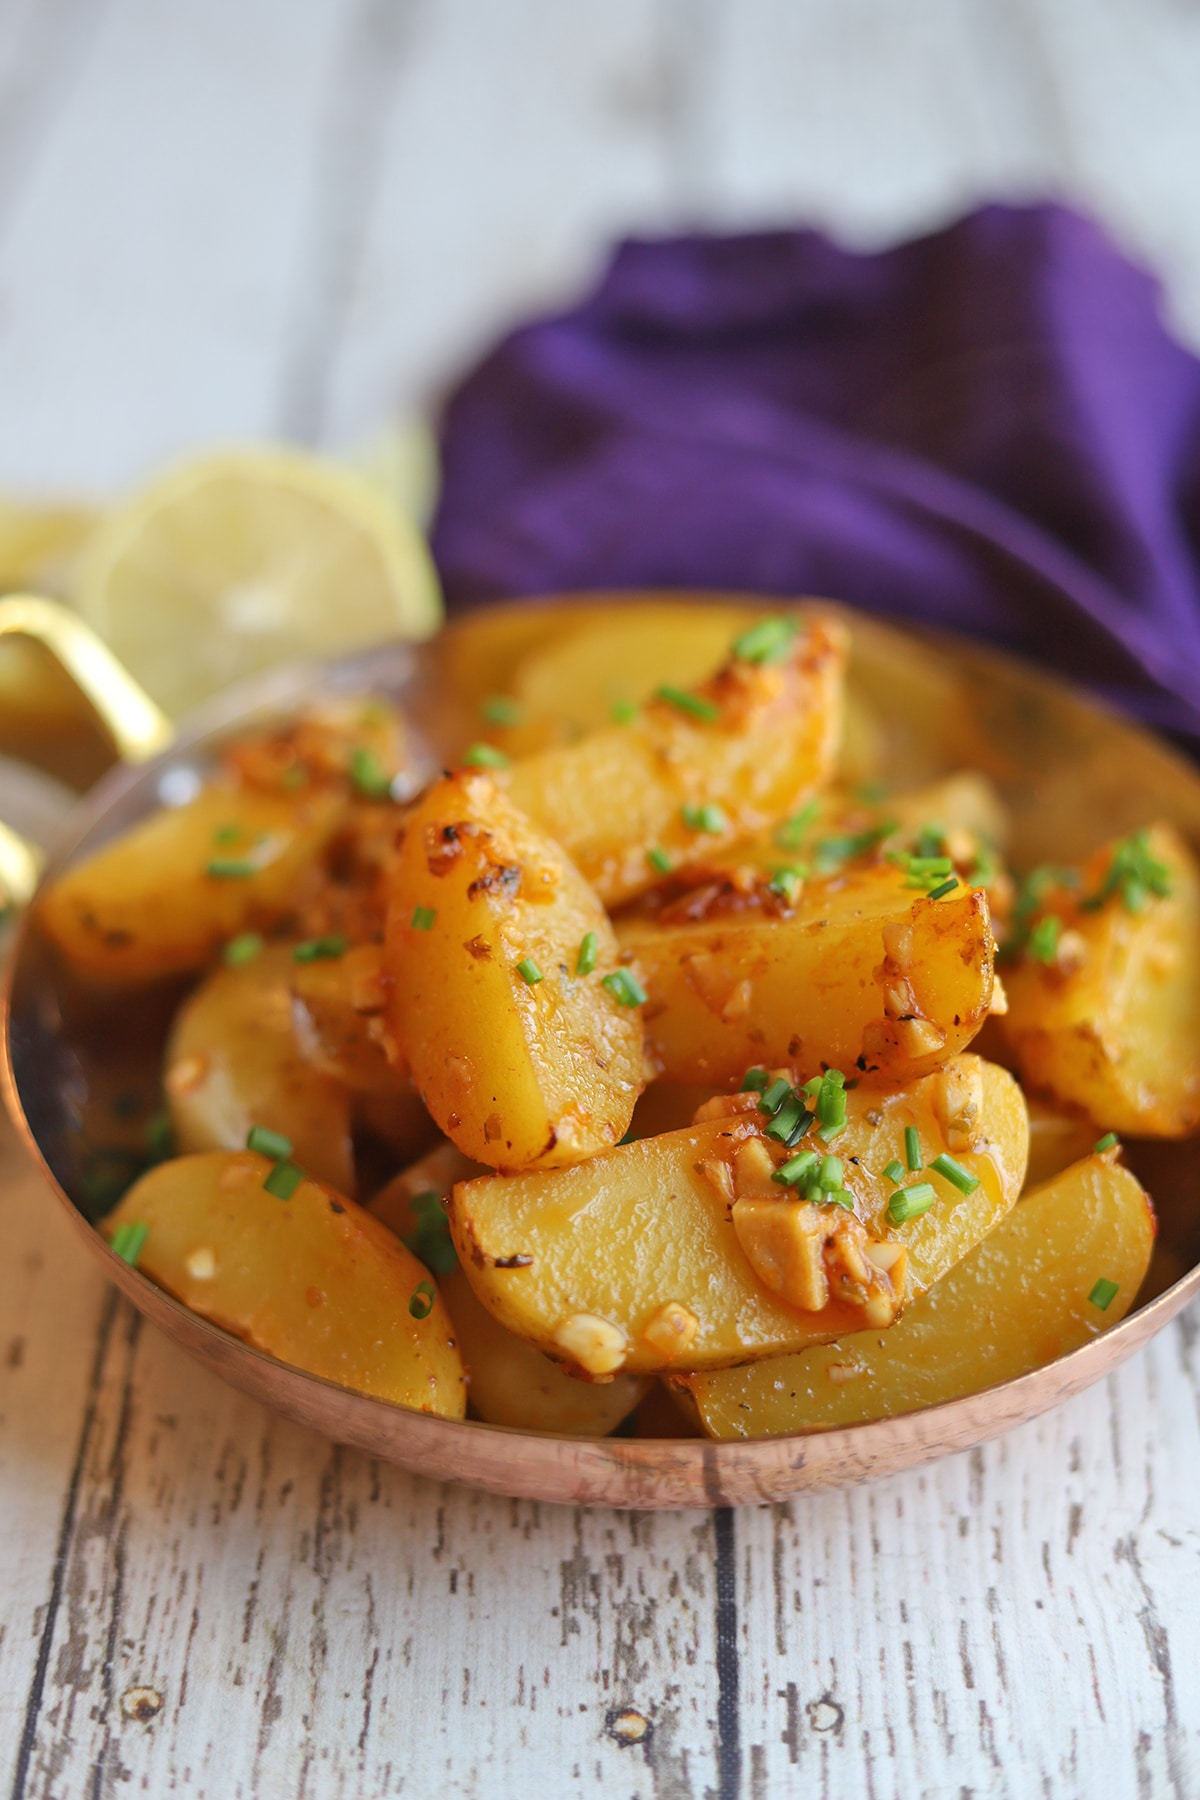 Lemony potatoes garnished with chives in serving dish.